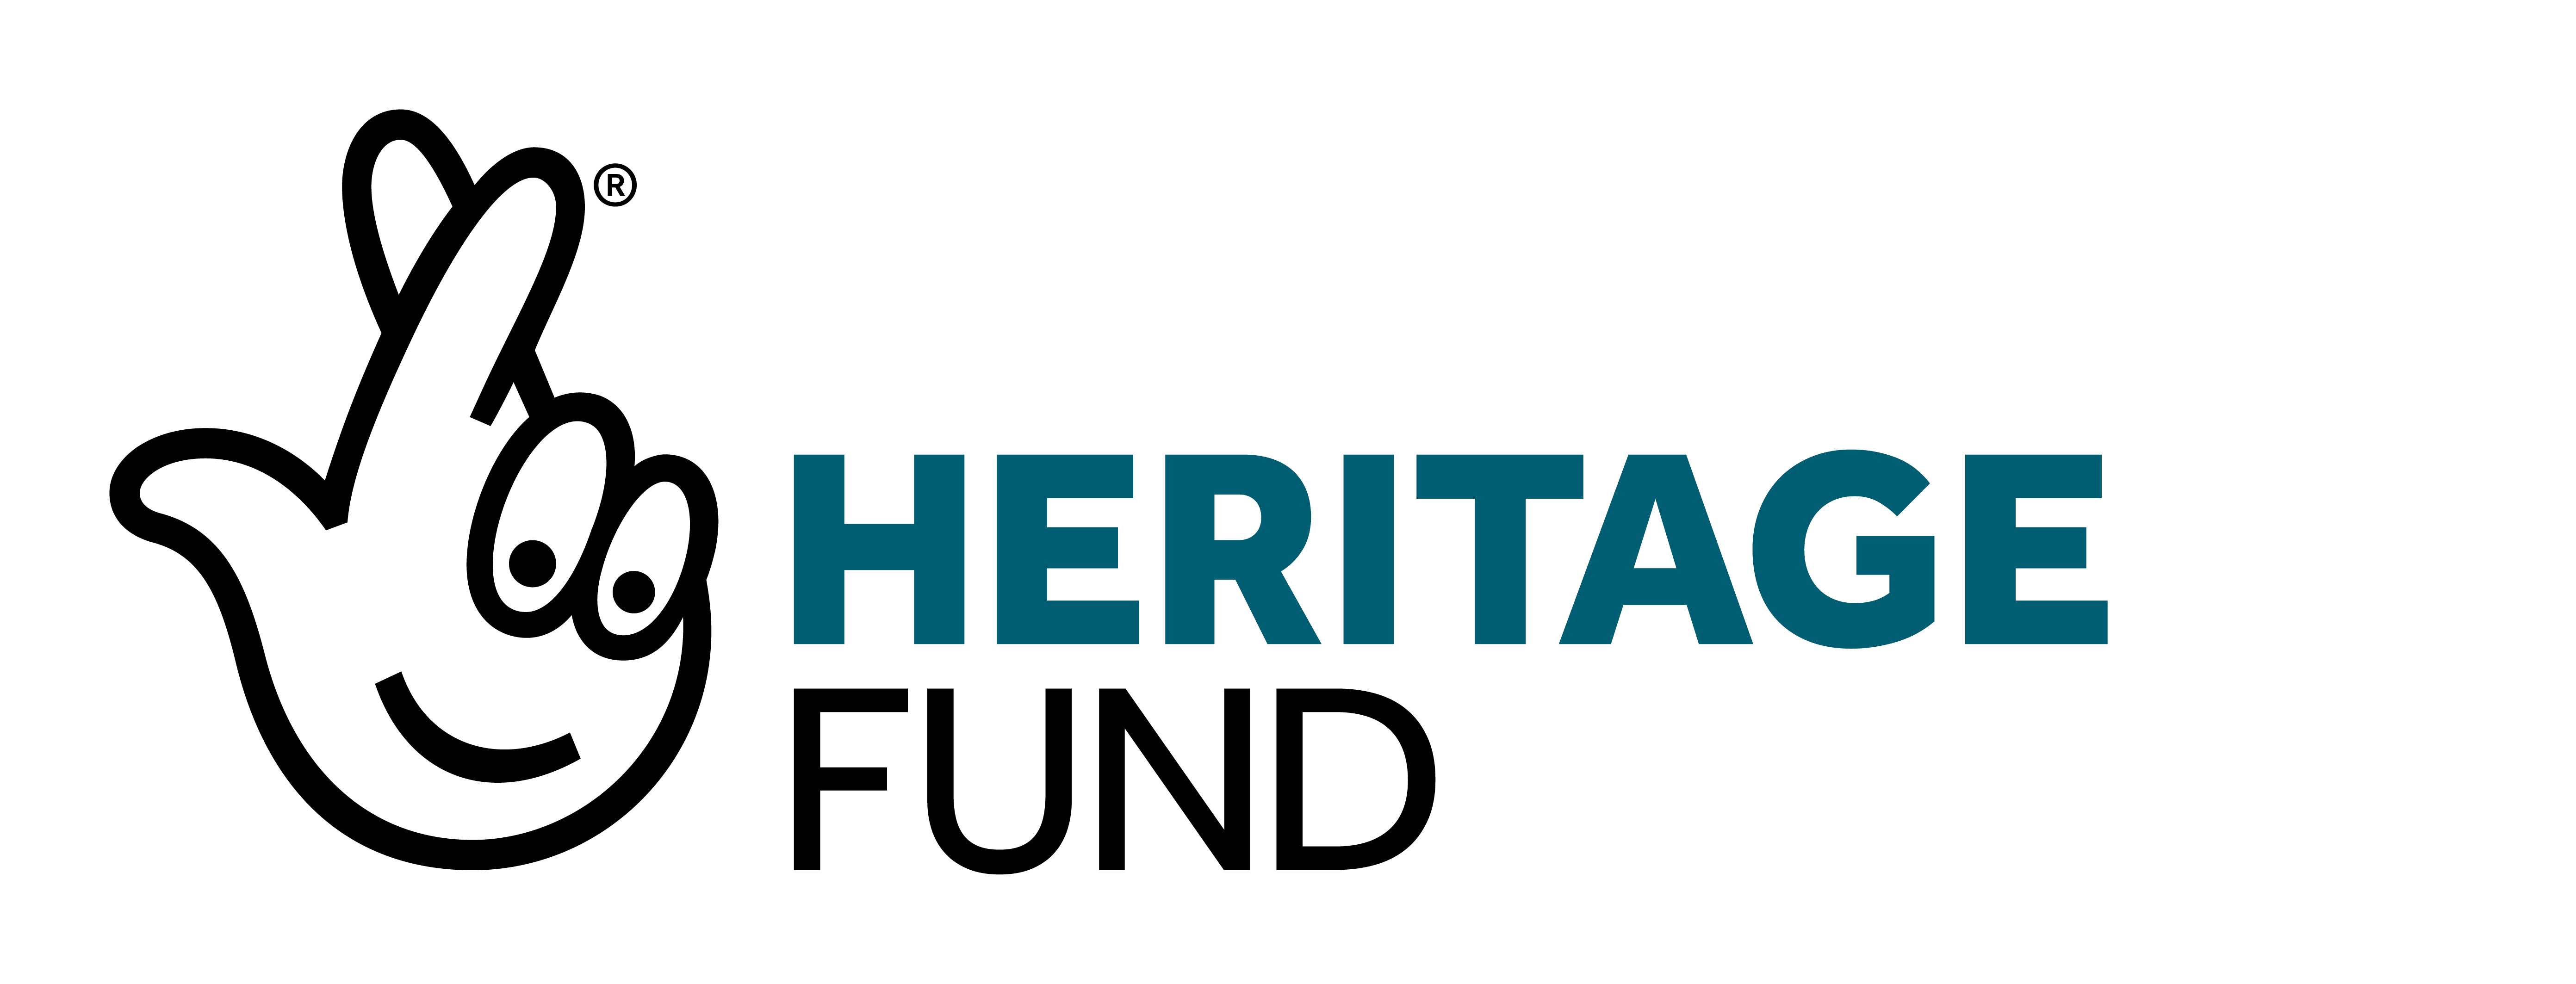 Heritage Fund logo with a white cartoon of a hand with fingers crossed, with eyes and a smiley face on the palm.